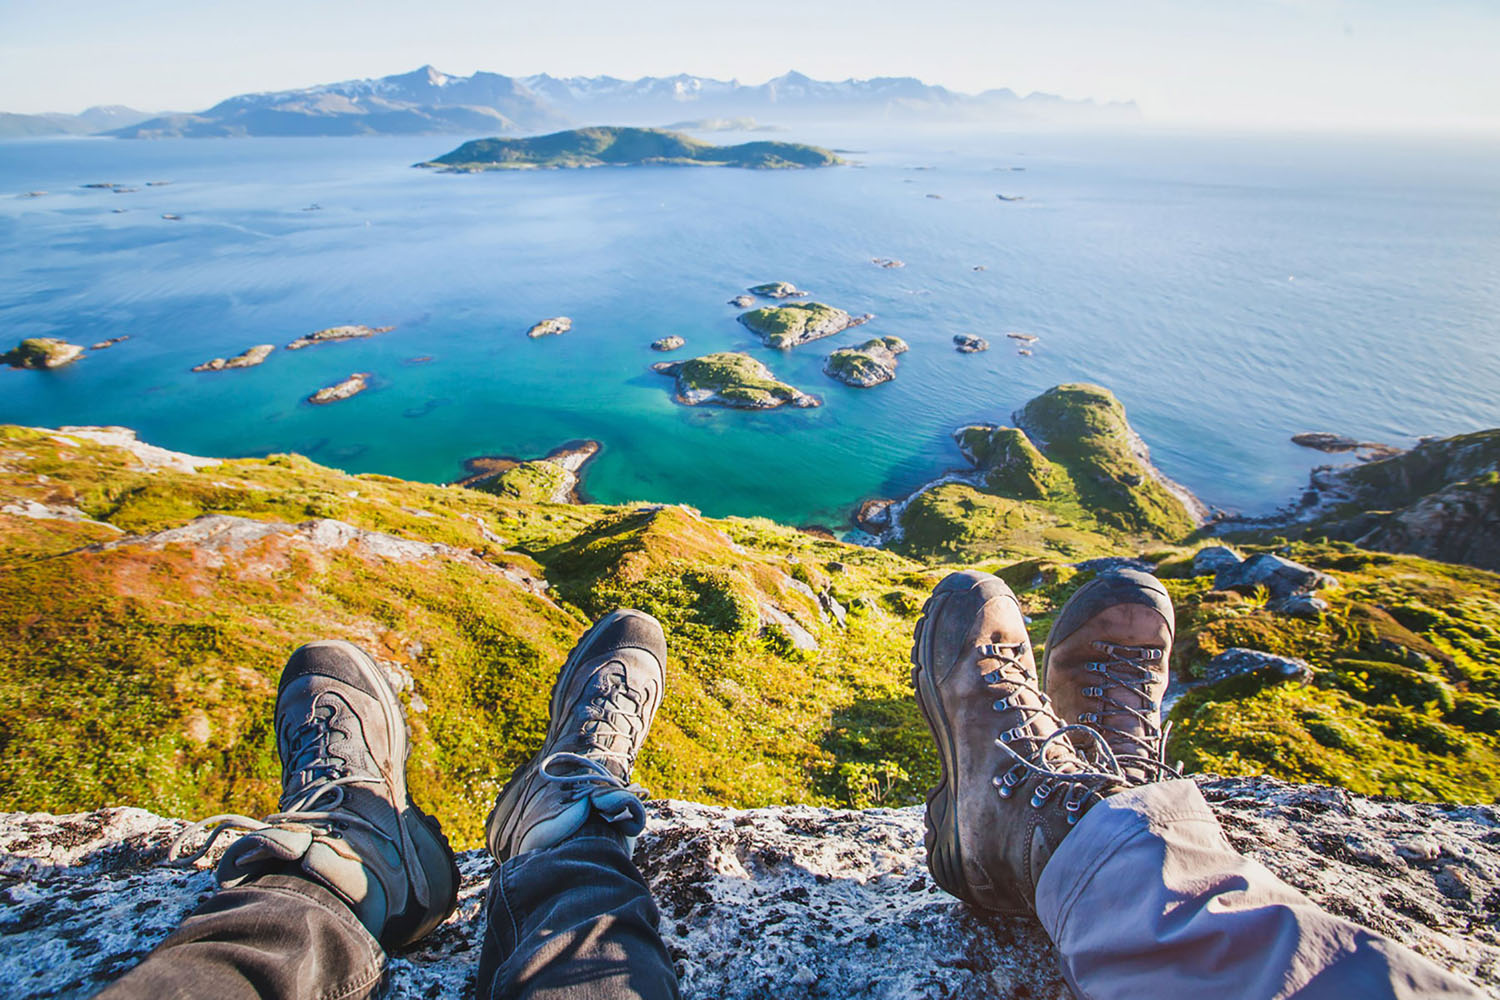 Two hikers overlook a lake in the Norwegian Fjords from a mountain top, with their hiking shoes in the foreground.